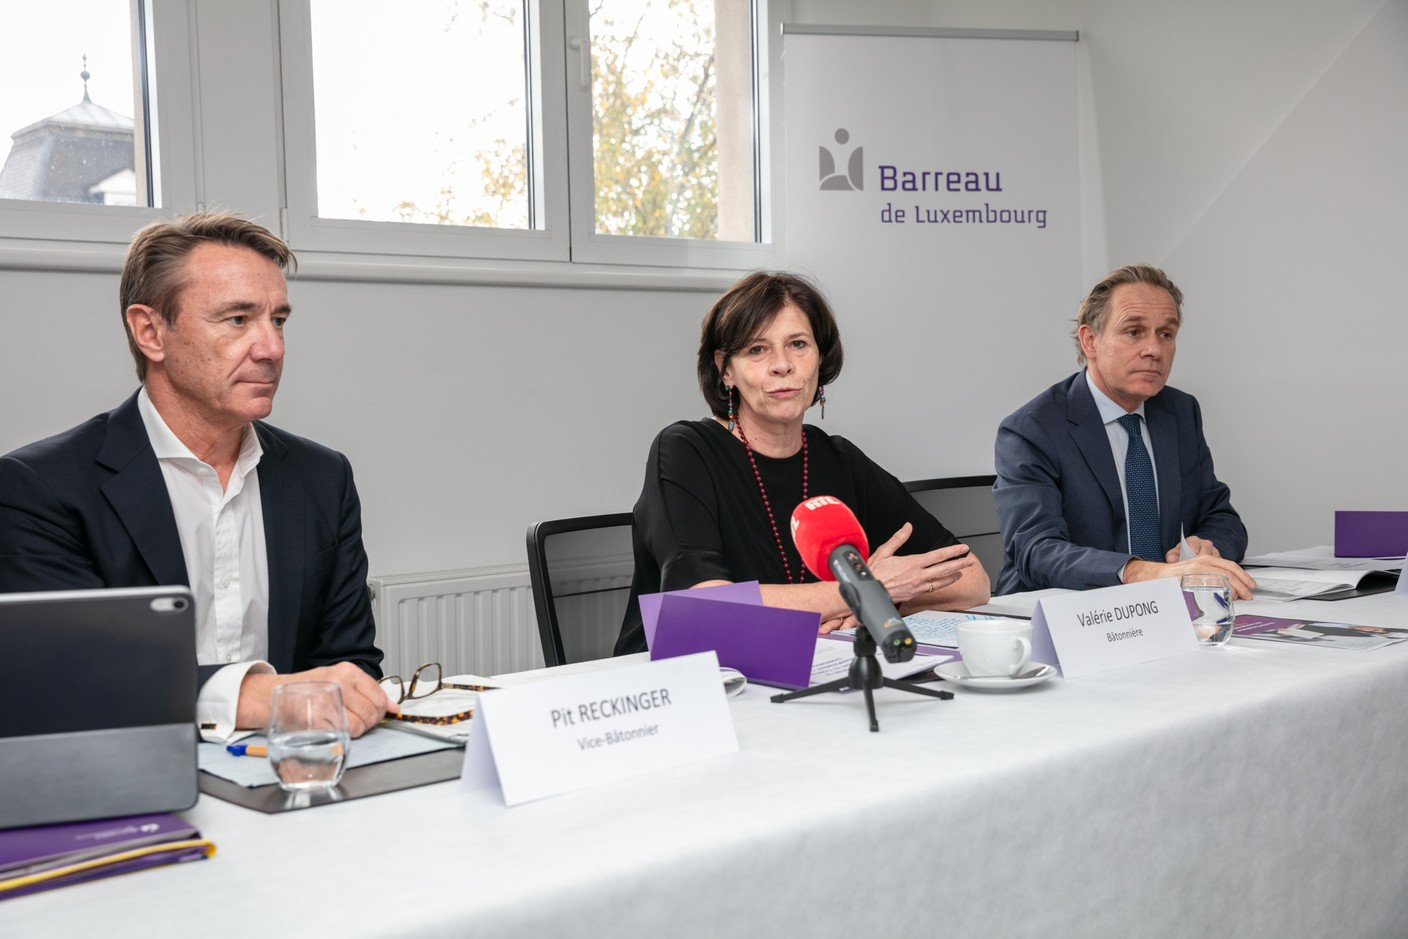 The Luxembourg Bar Association has praised the seriousness of its members in the fight against money laundering. Photo: Romain Gamba / Maison Moderne